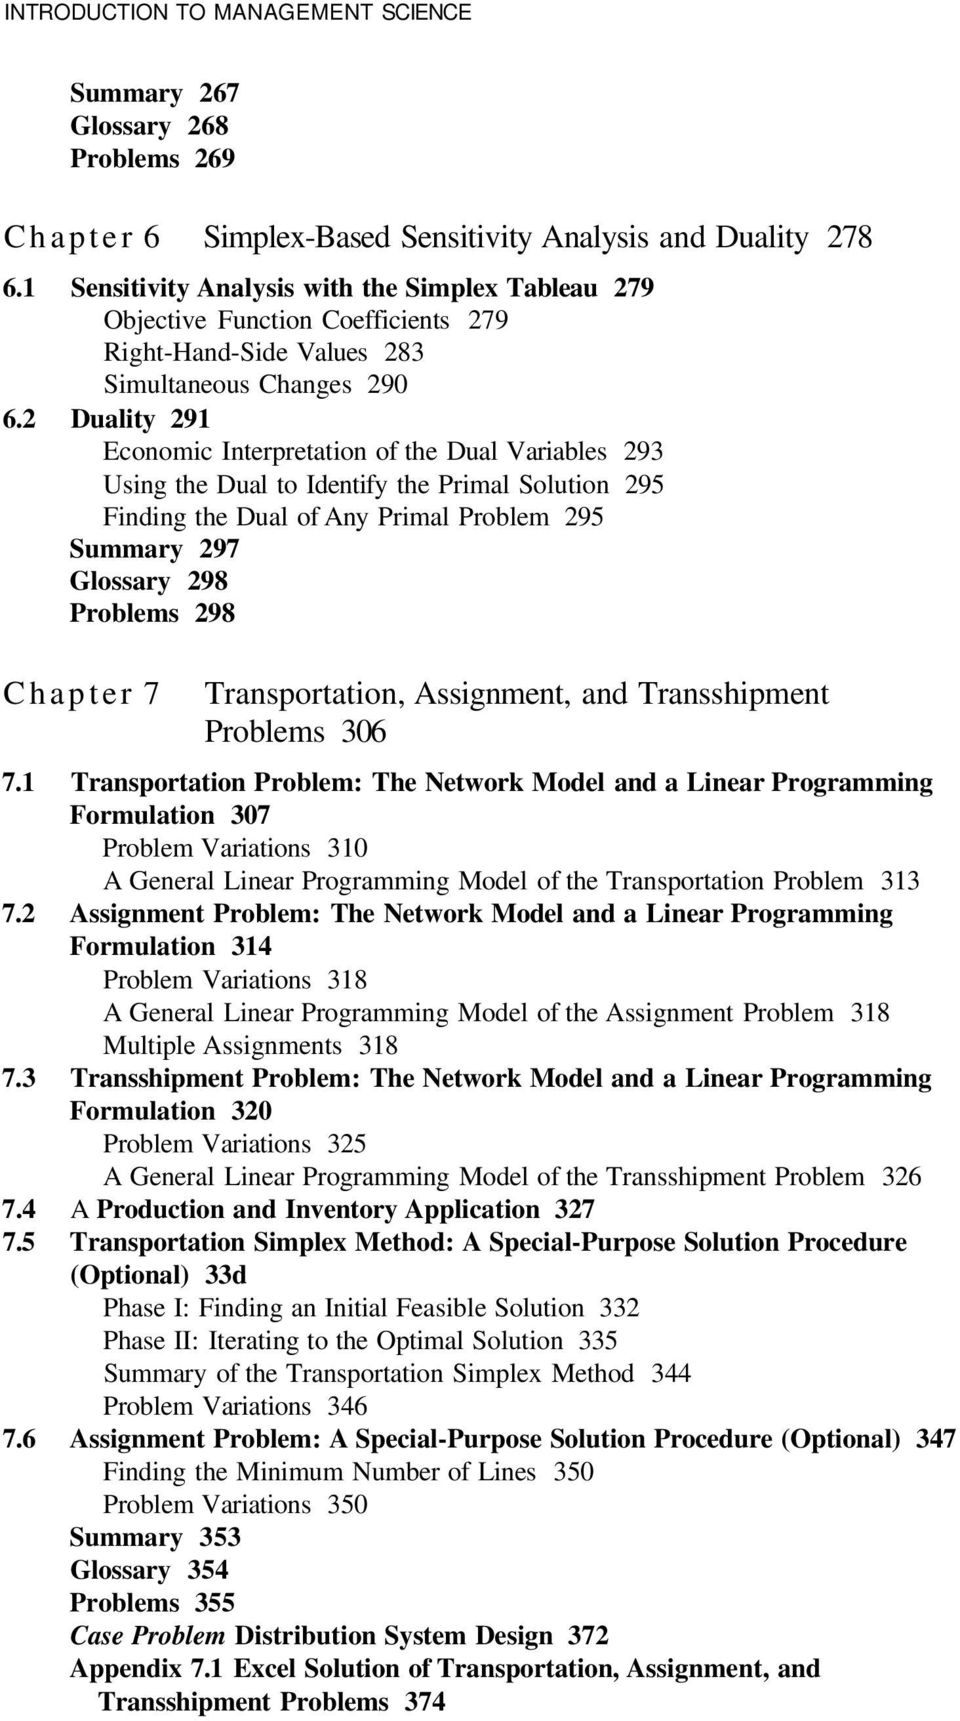 2 Duality 291 Economic Interpretation of the Dual Variables 293 Using the Dual to Identify the Primal Solution 295 Finding the Dual of Any Primal Problem 295 Summary 297 Glossary 298 Problems 298